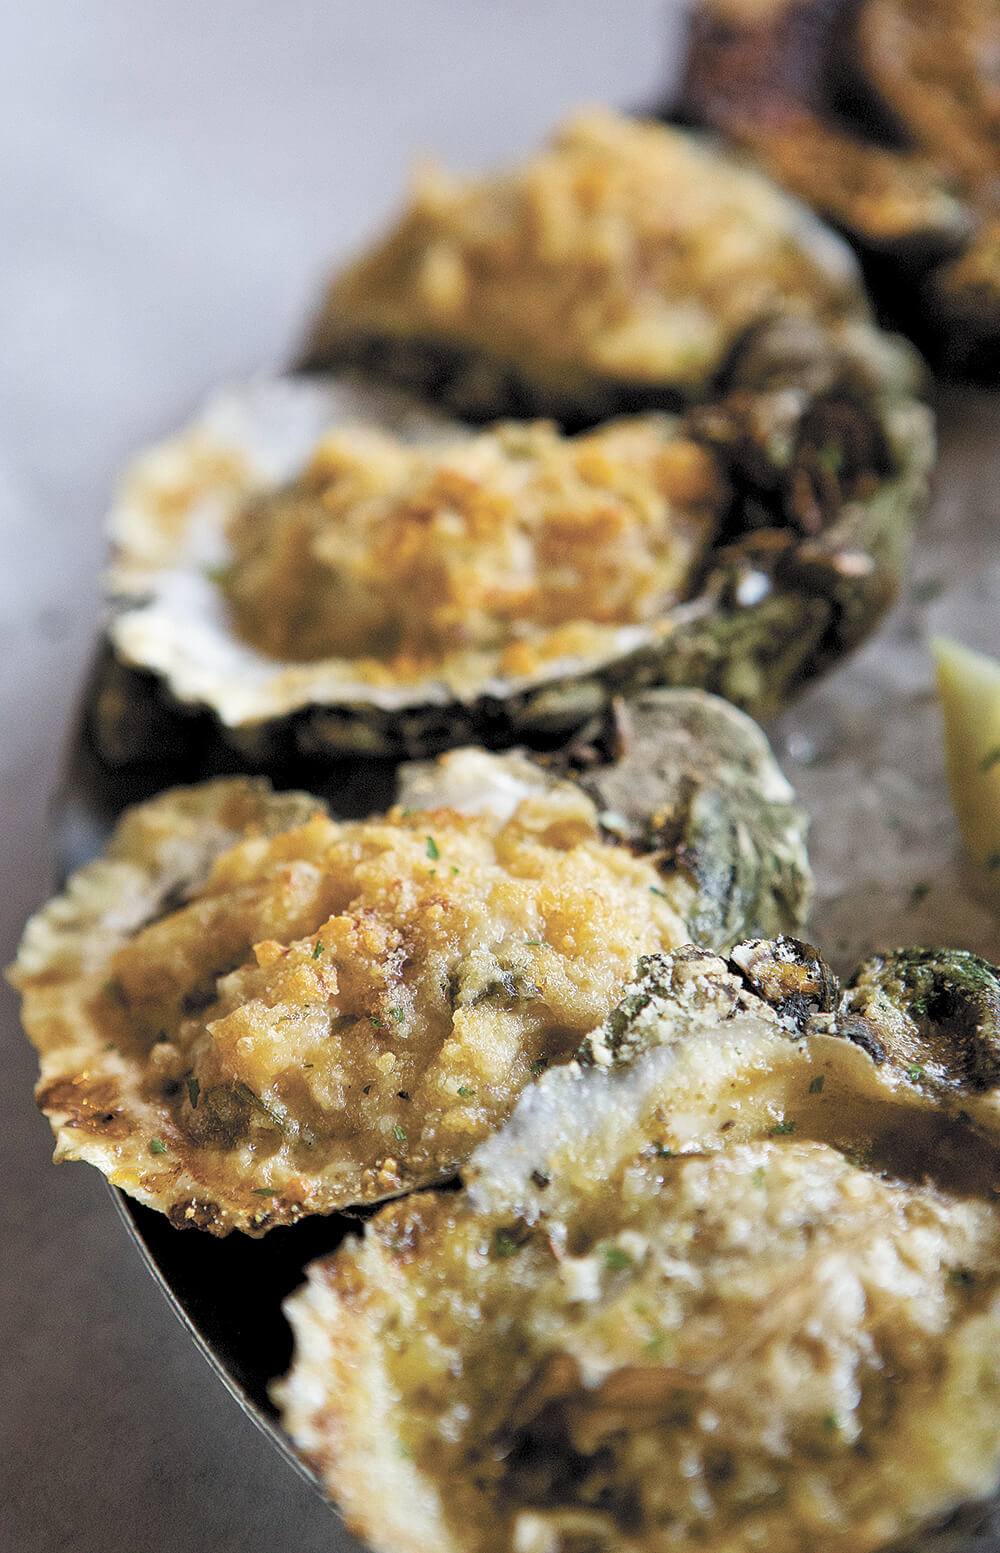 Shuckin' good seafood at Half Shell Oyster House